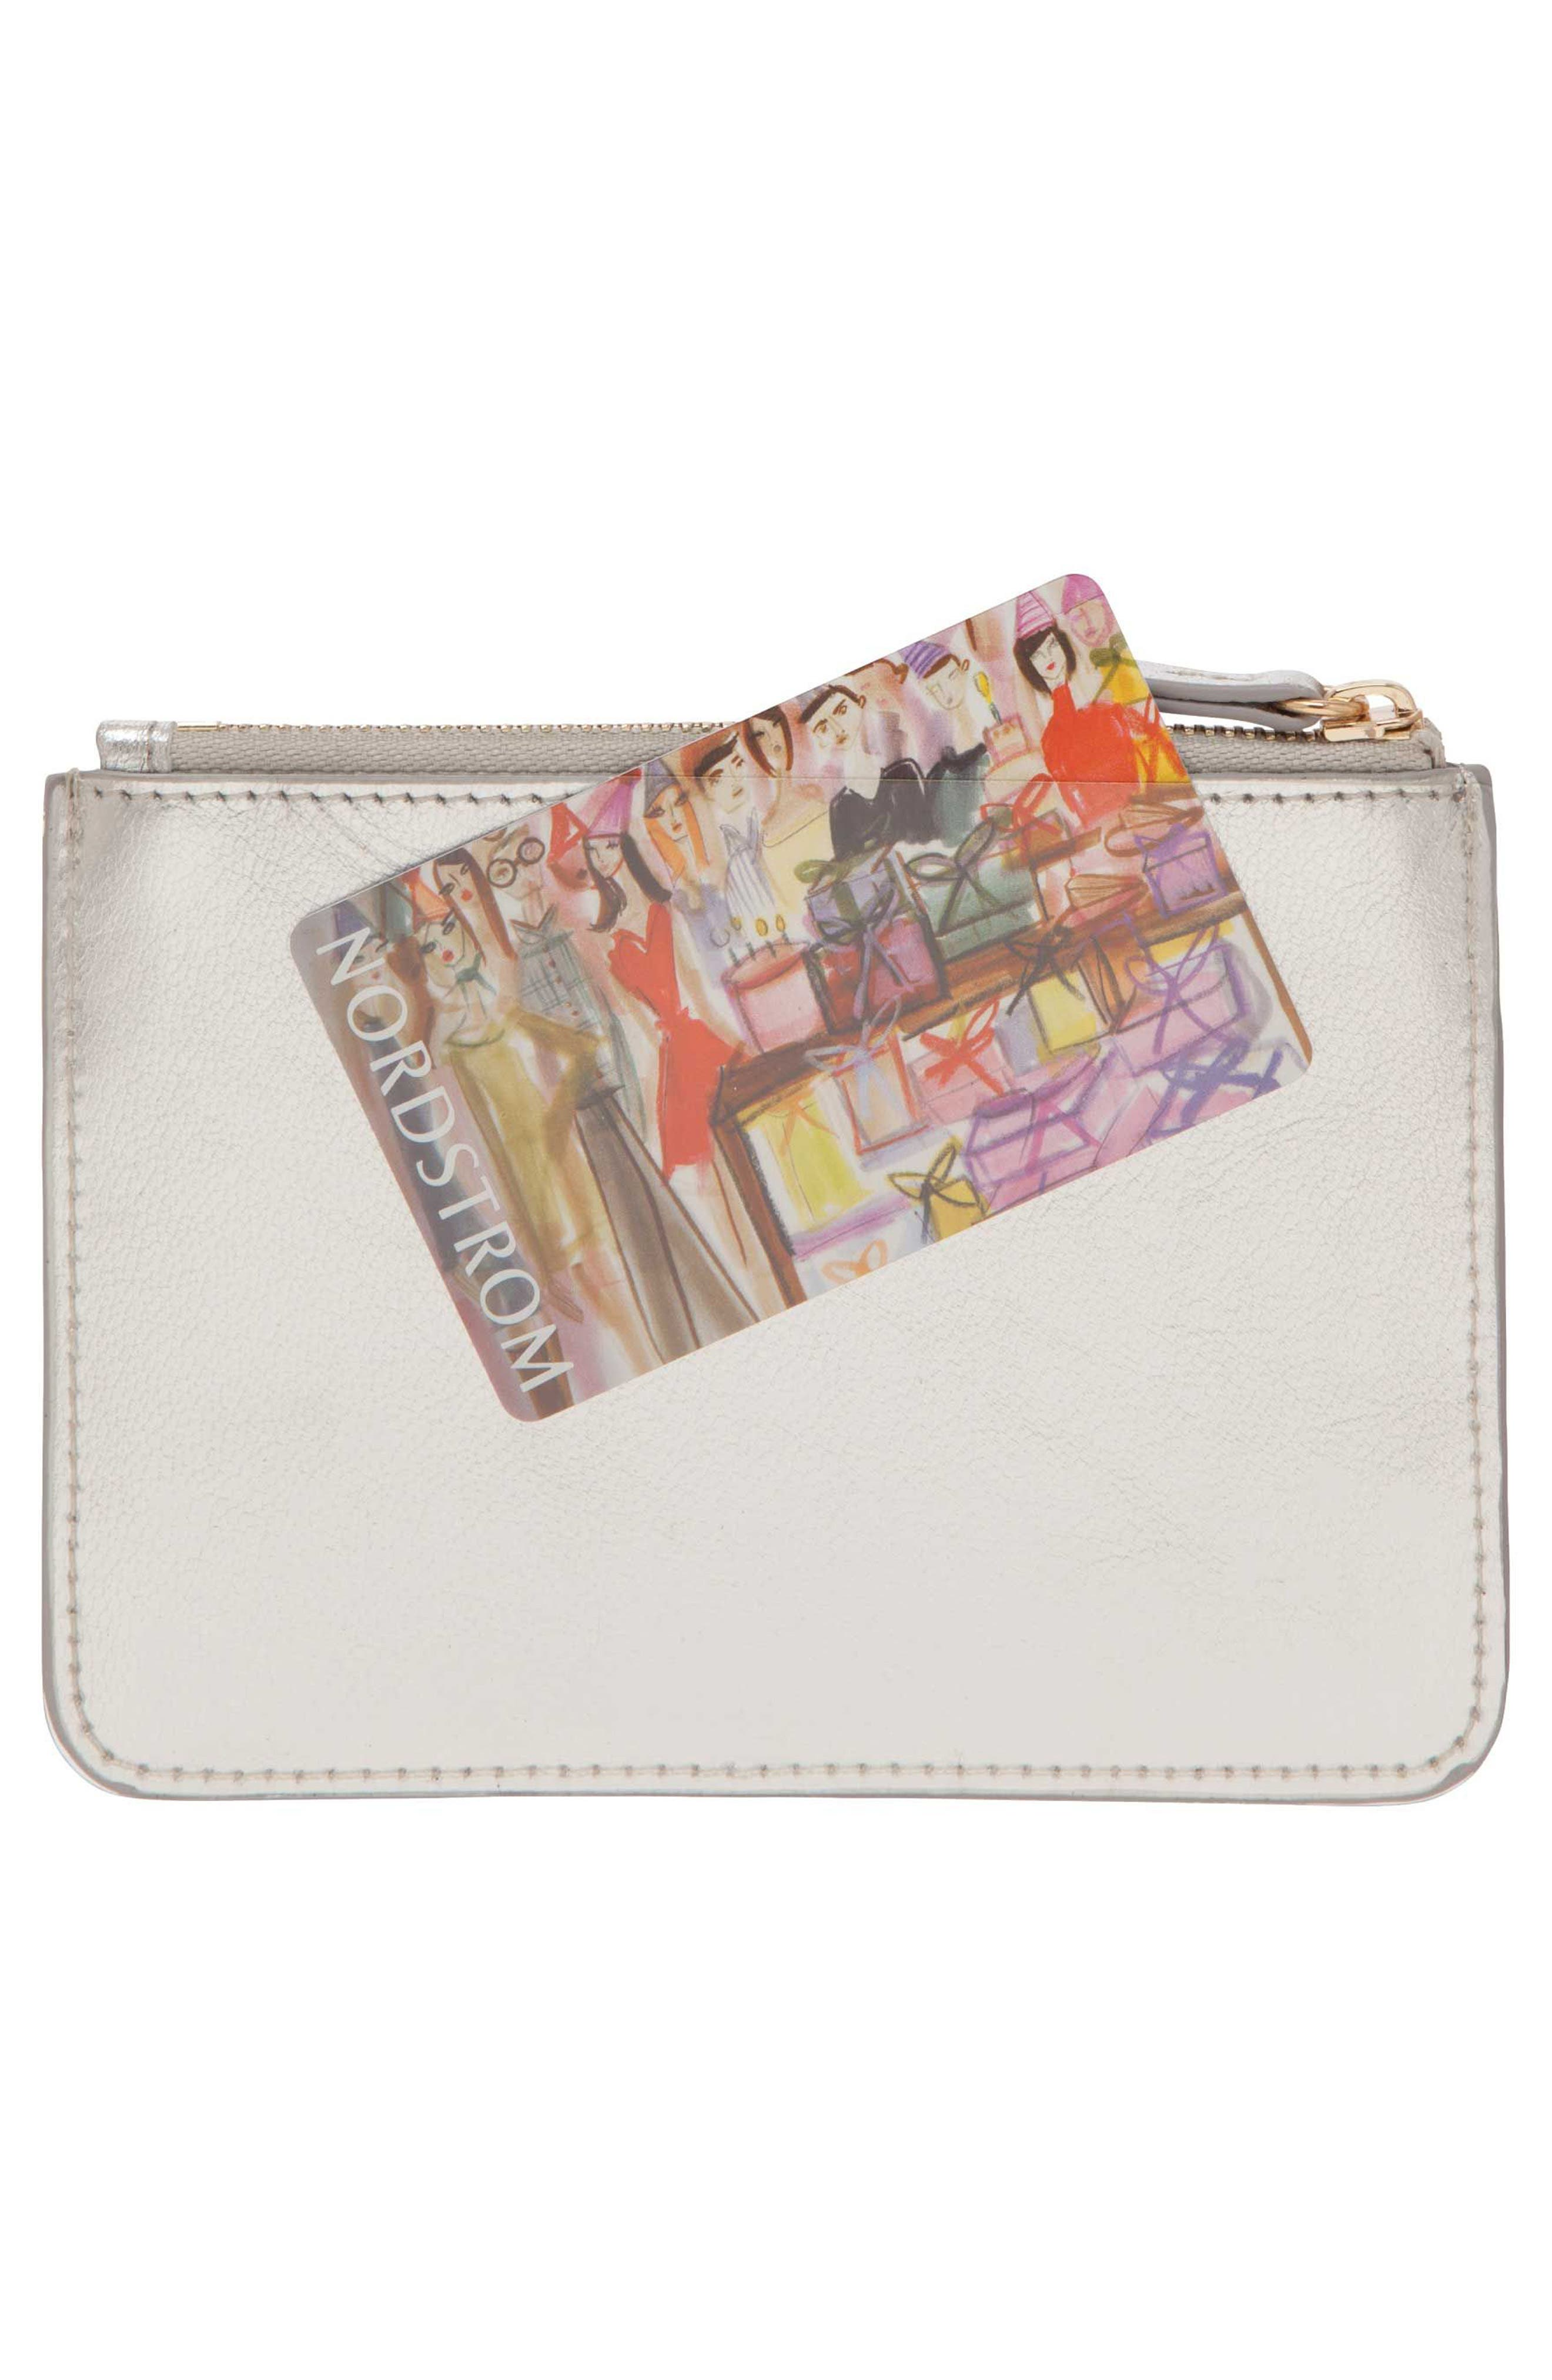 Privacy Leather Coin Pouch,                             Alternate thumbnail 5, color,                             SILVER